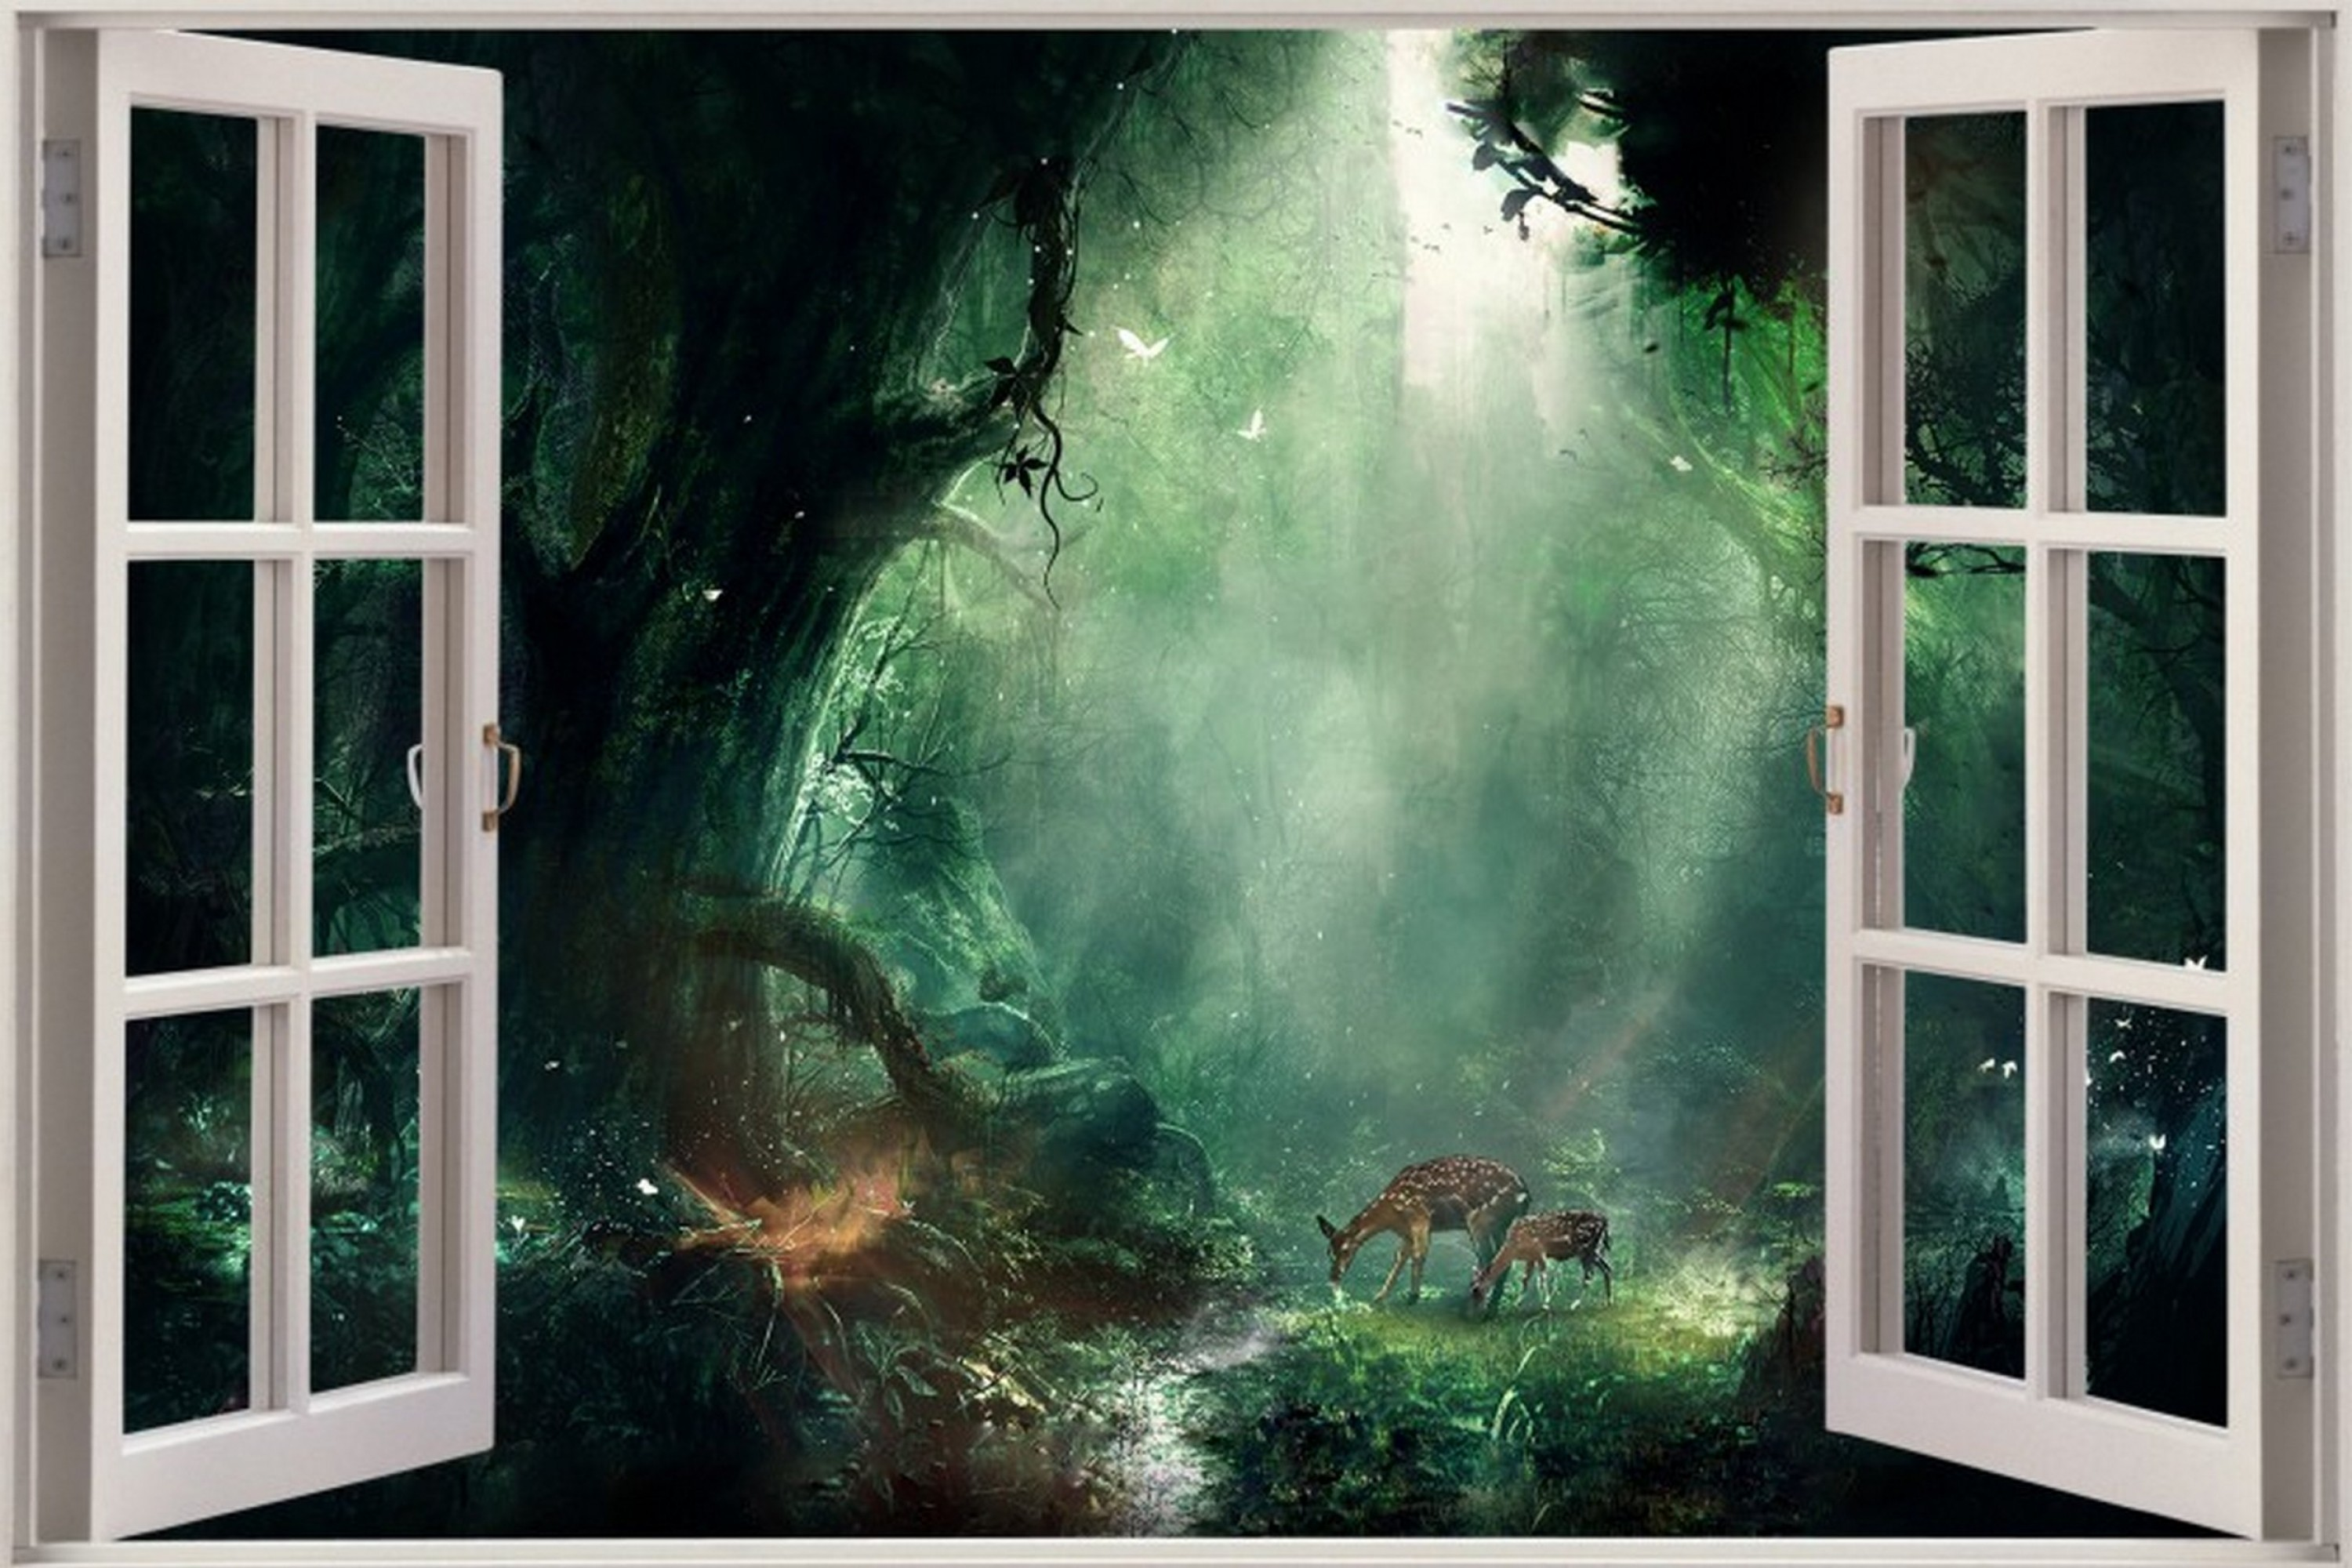 3000x2000 Forest Room Wallpaper Hd Images Desktop Window Poster Fantasy Cubicle Ideas  For Laptop | MKUMODELS